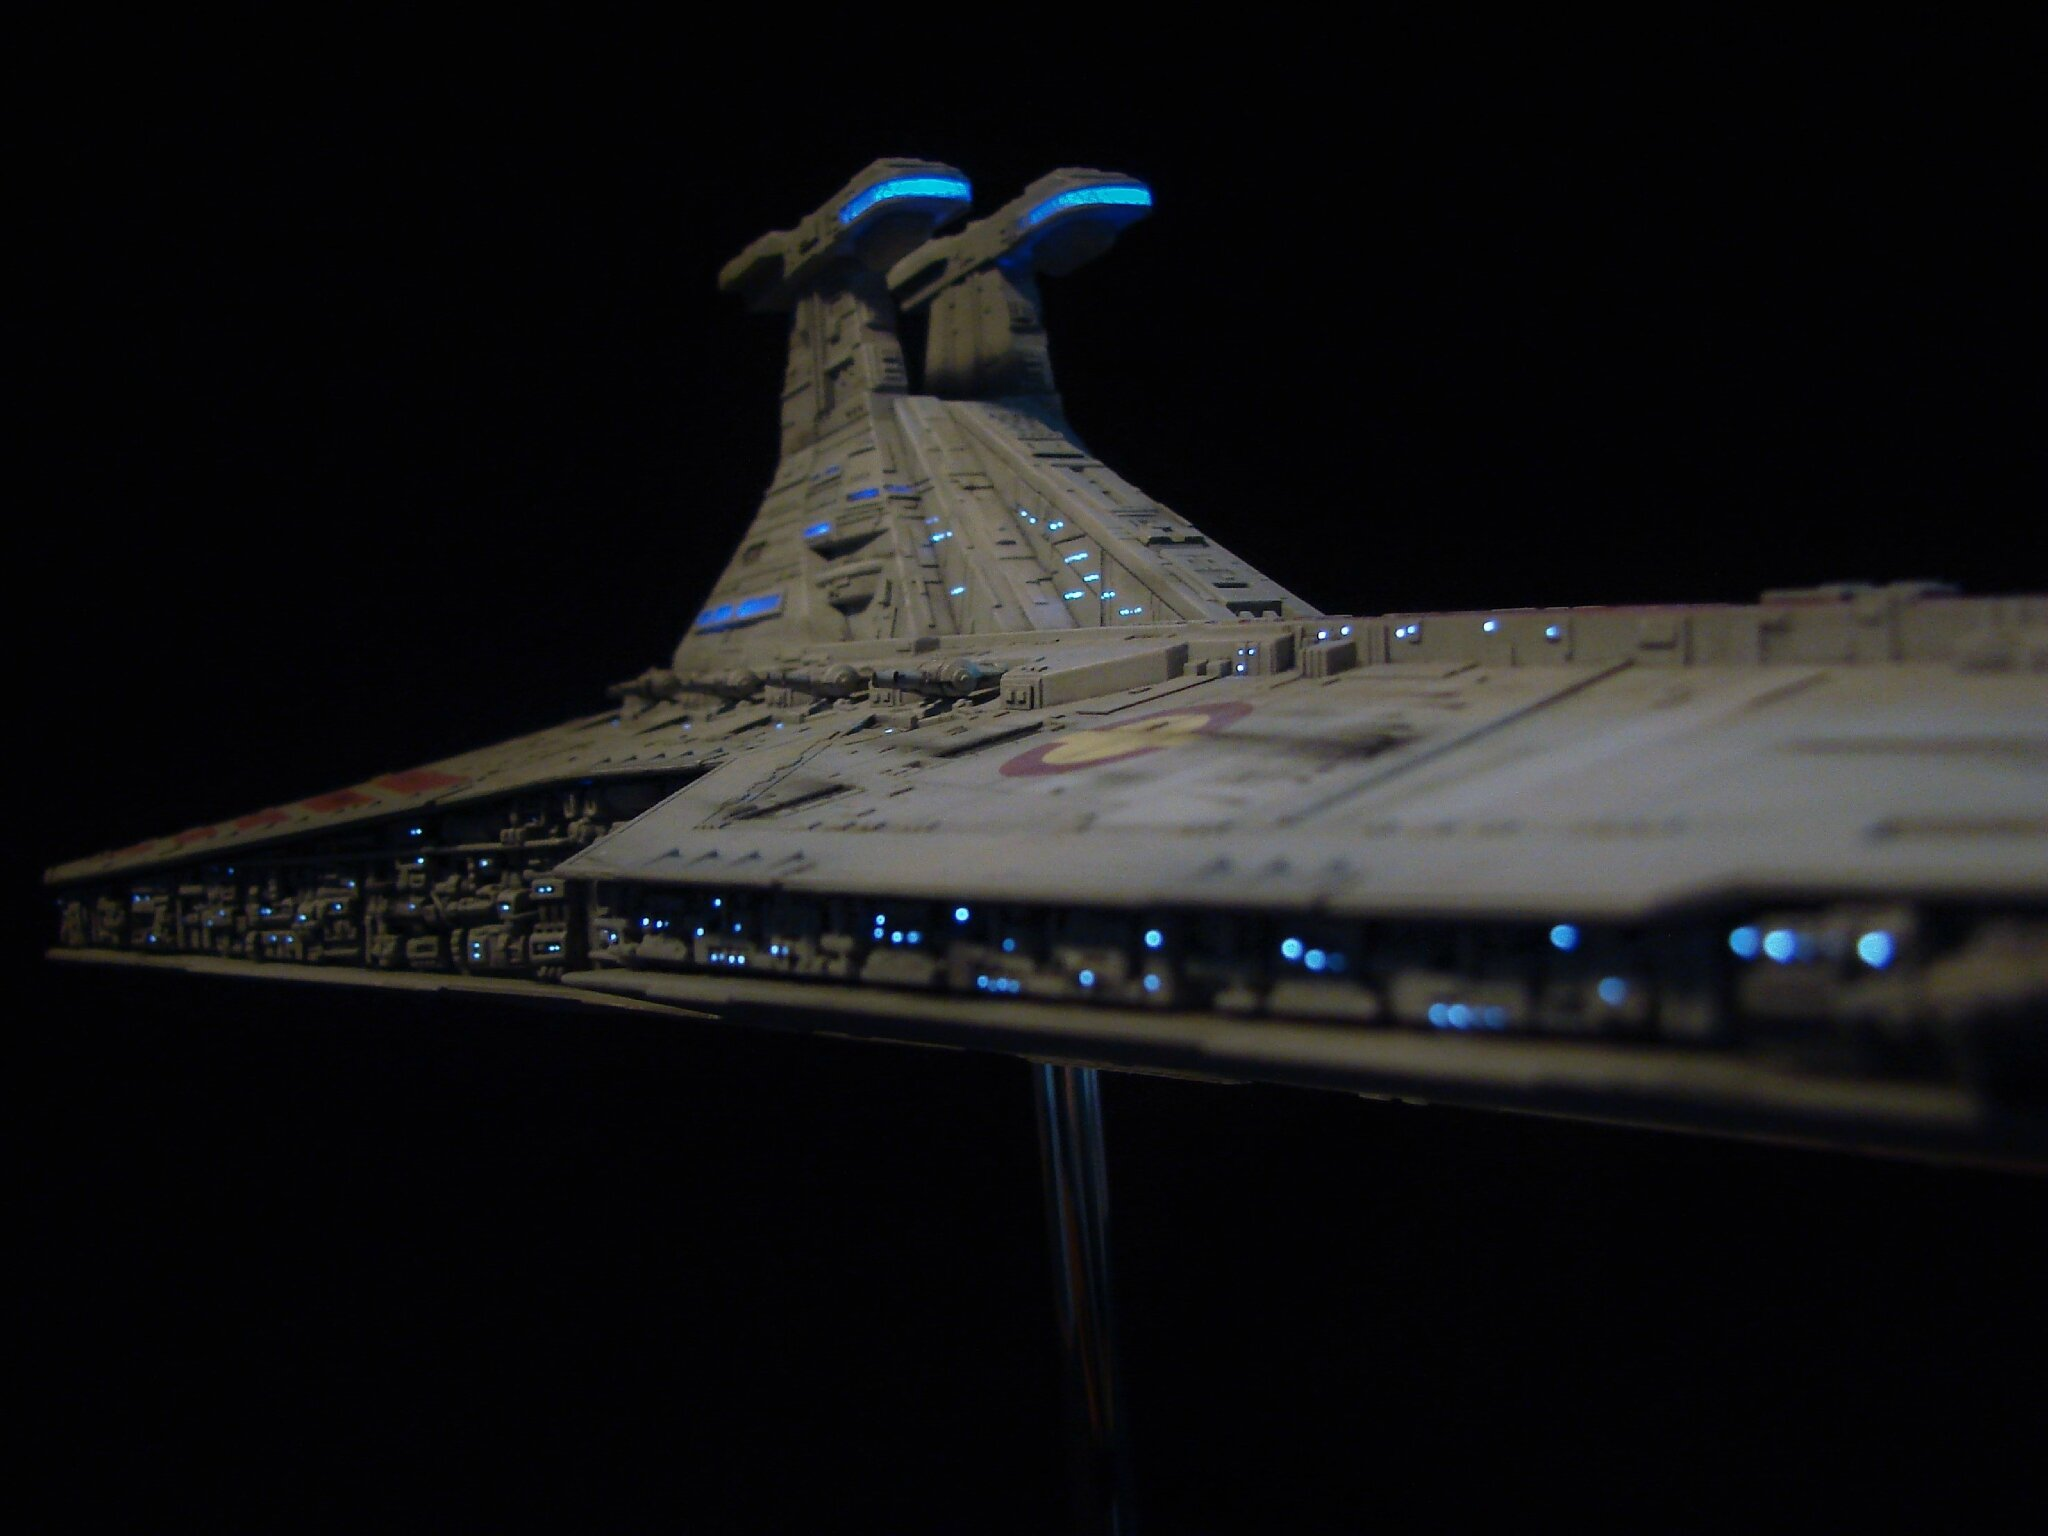 Republic Star Destroyer images